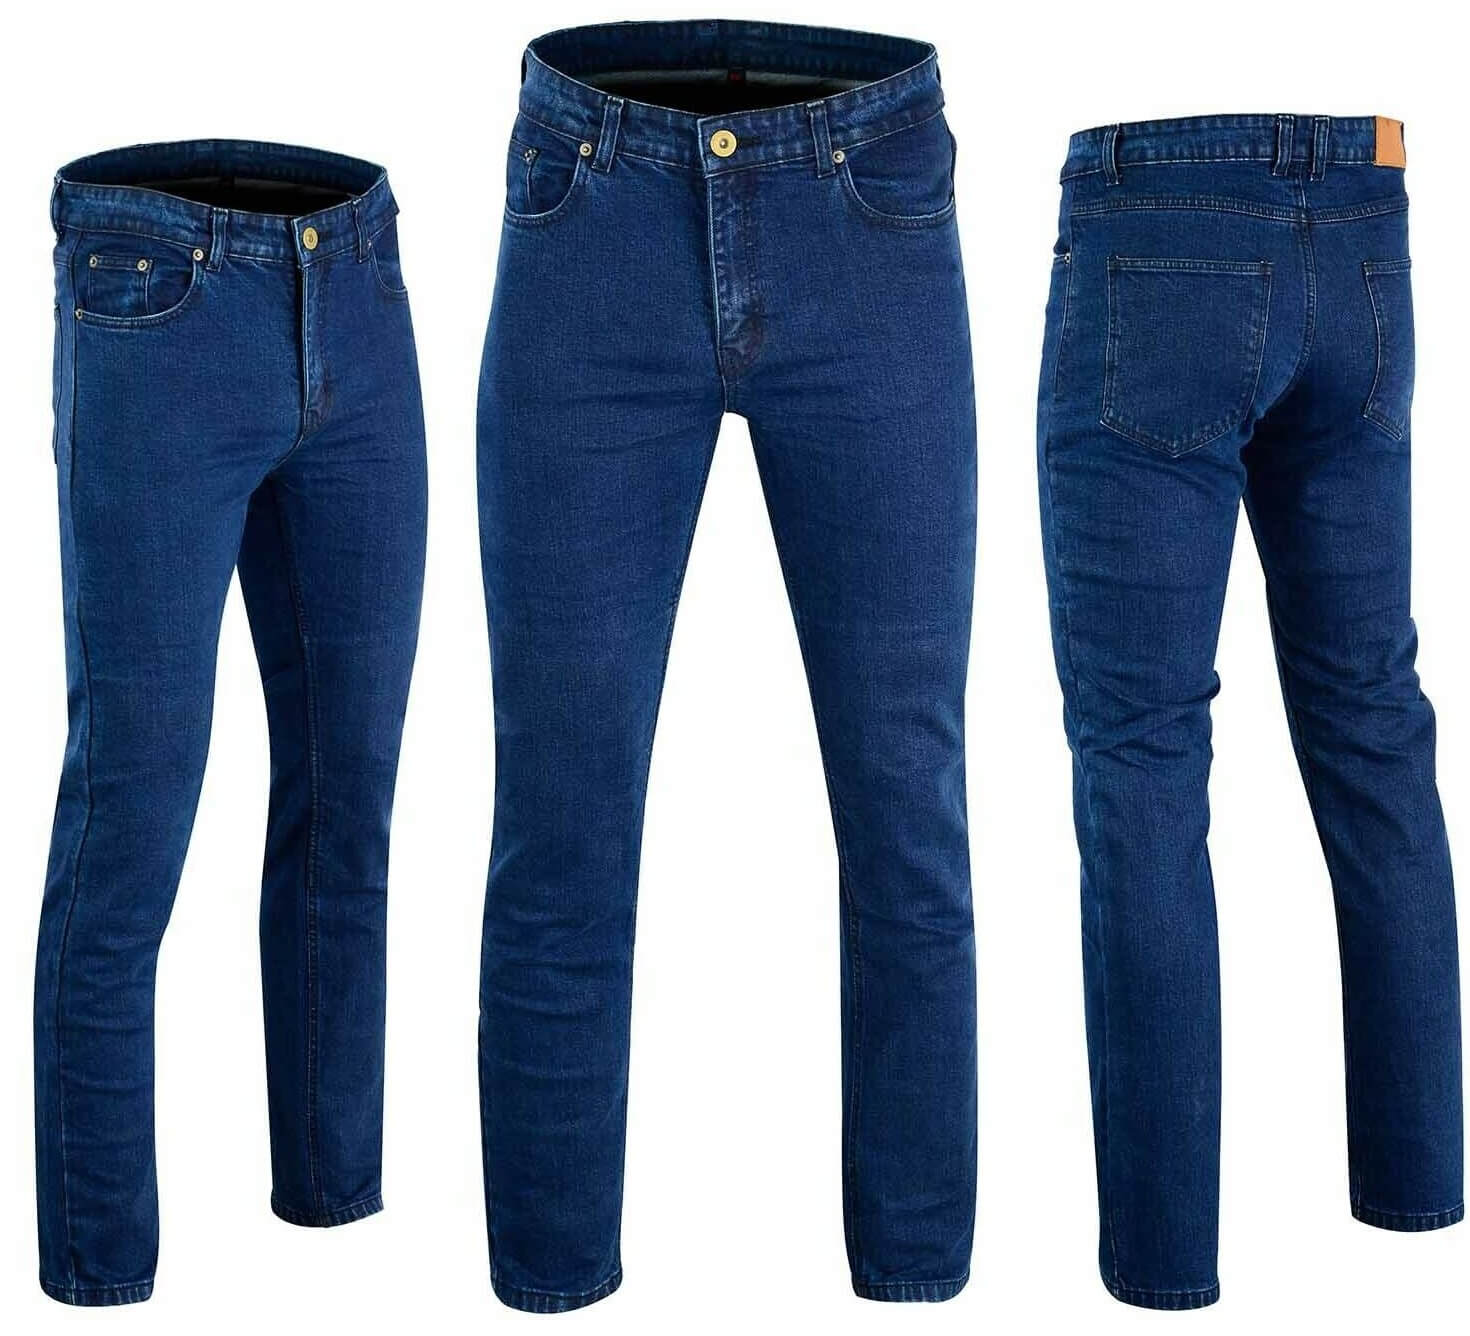 stretch-motorcycle-jeans-pants-15